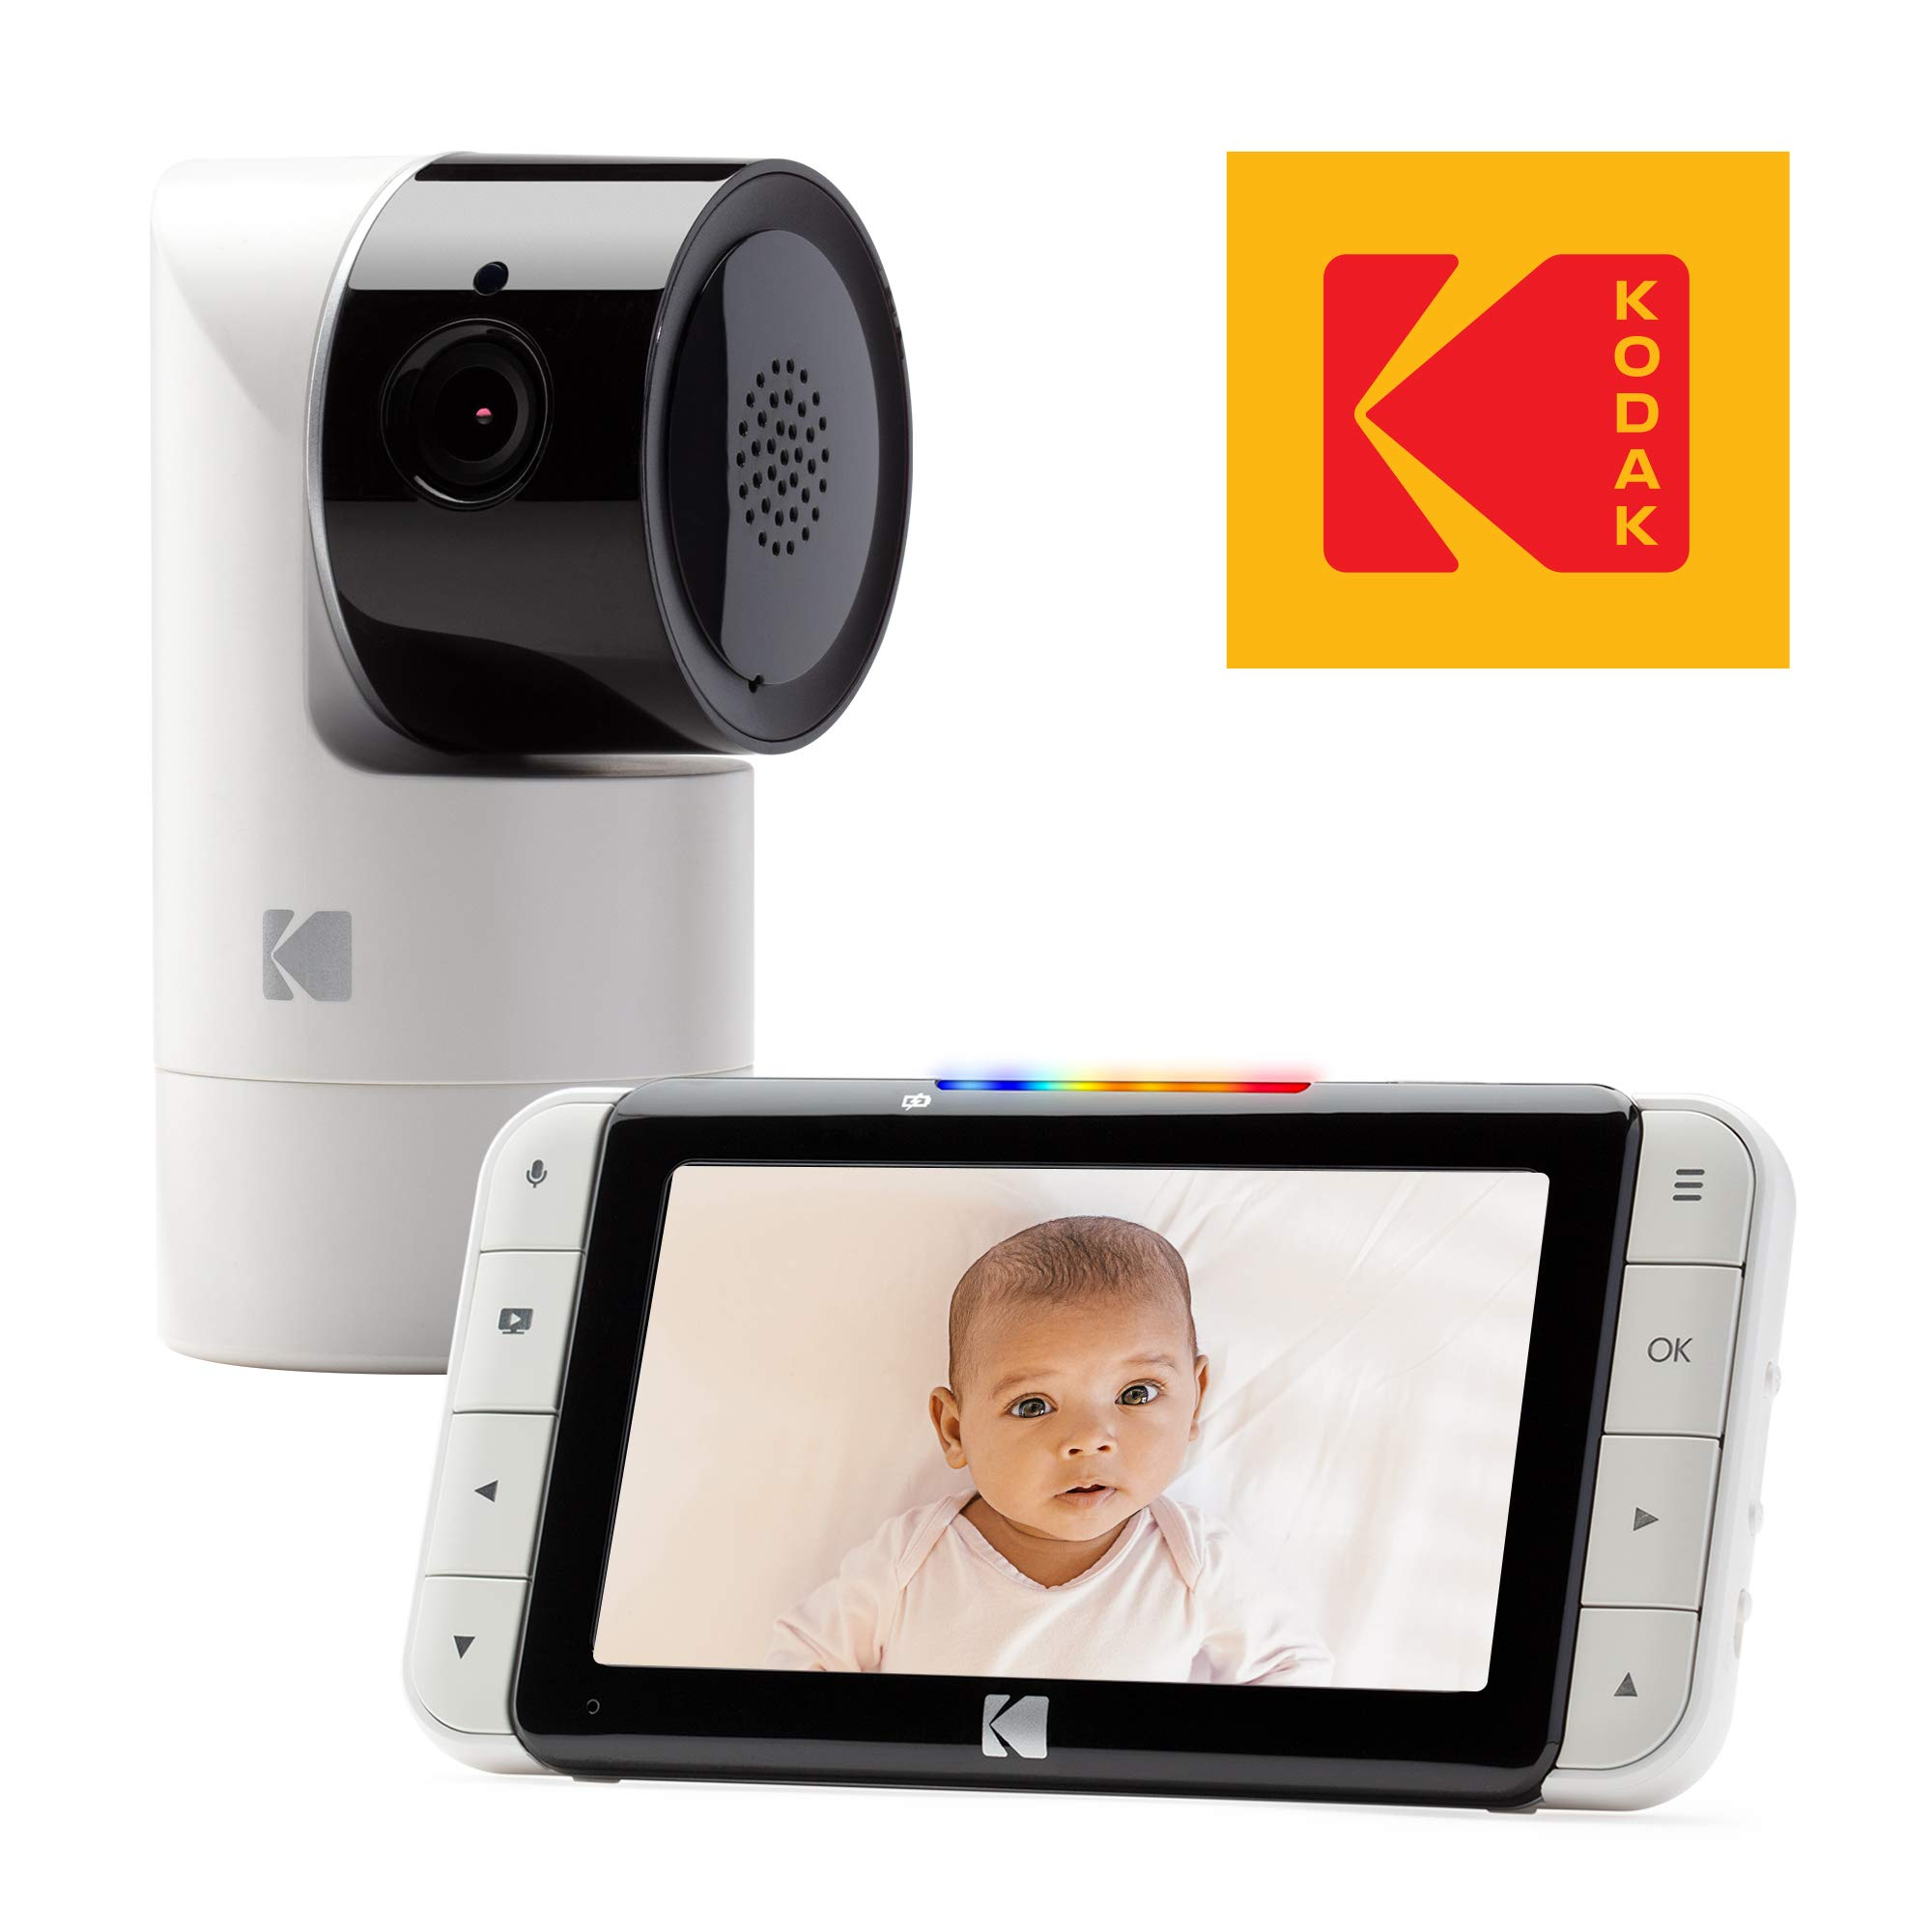 KODAK Cherish C525 Video Baby Monitor with Mobile App - 5'' HD Screen - Hi-res Baby Camera with Remote Tilt, Pan and Zoom, Two-Way Audio, Night-Vision, Long Range - WiFi Indoor Camera